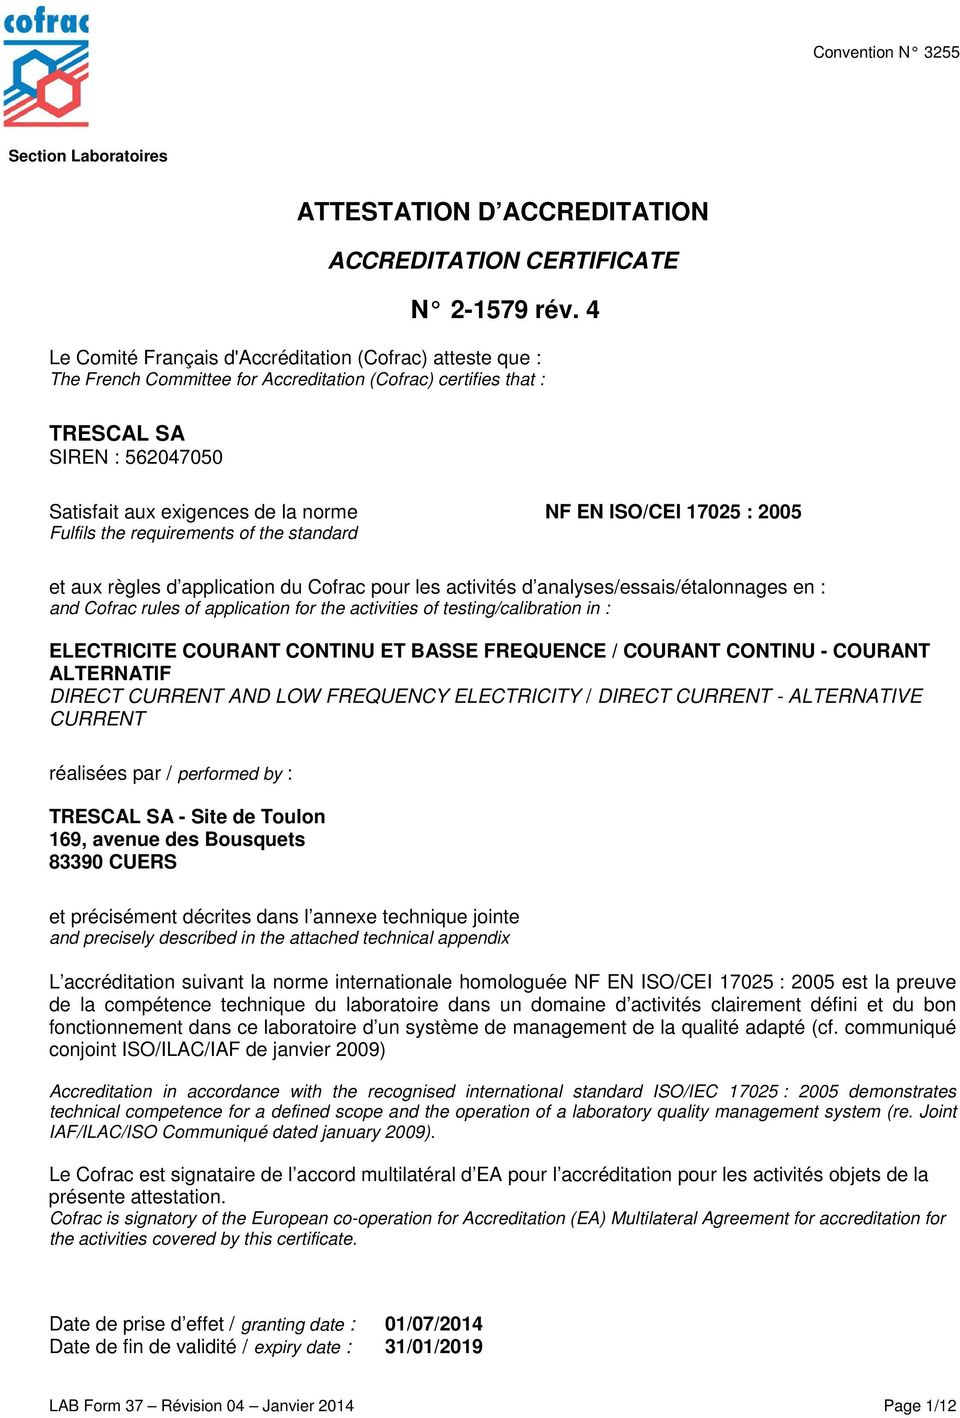 ISO/CEI 17025 : 2005 Fulfils the requirements of the standard et aux règles du Cofrac pour les activités d analyses/essais/étalonnages en : and Cofrac rules of application for the activities of